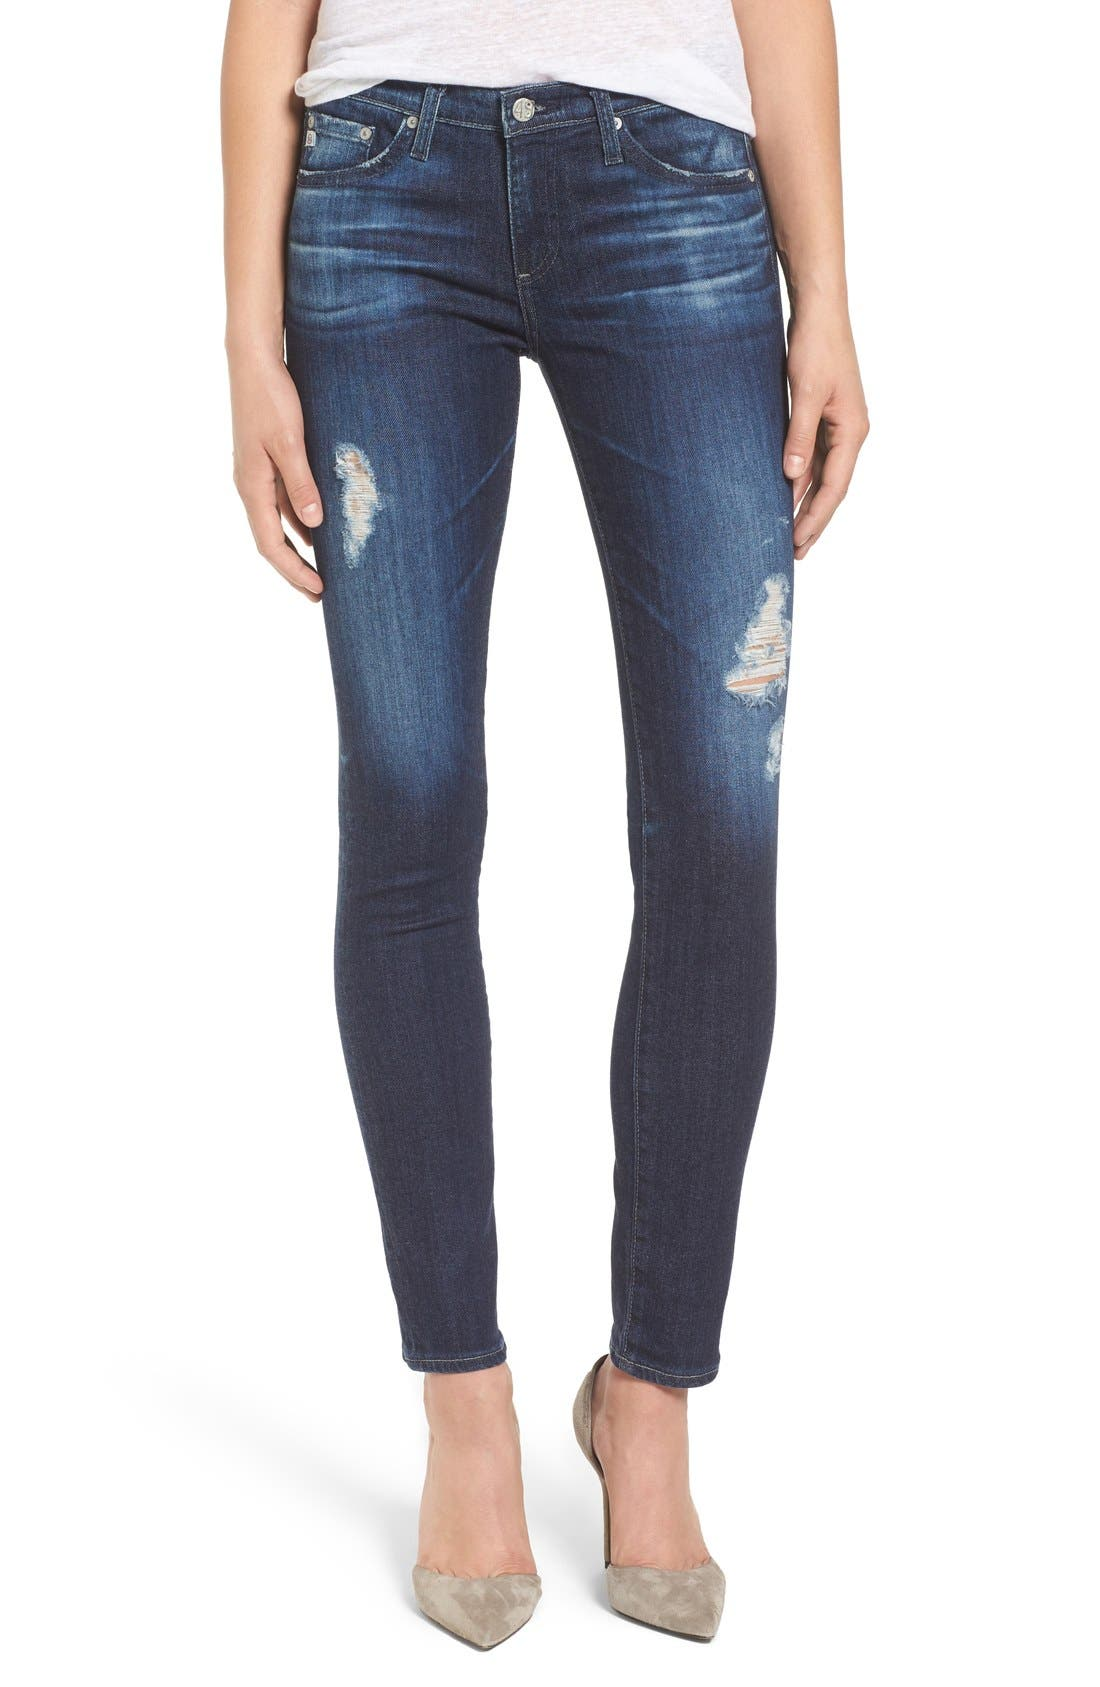 Alternate Image 1 Selected - AG 'The Stilt' Cigarette Leg Jeans (7 Year Ripped)